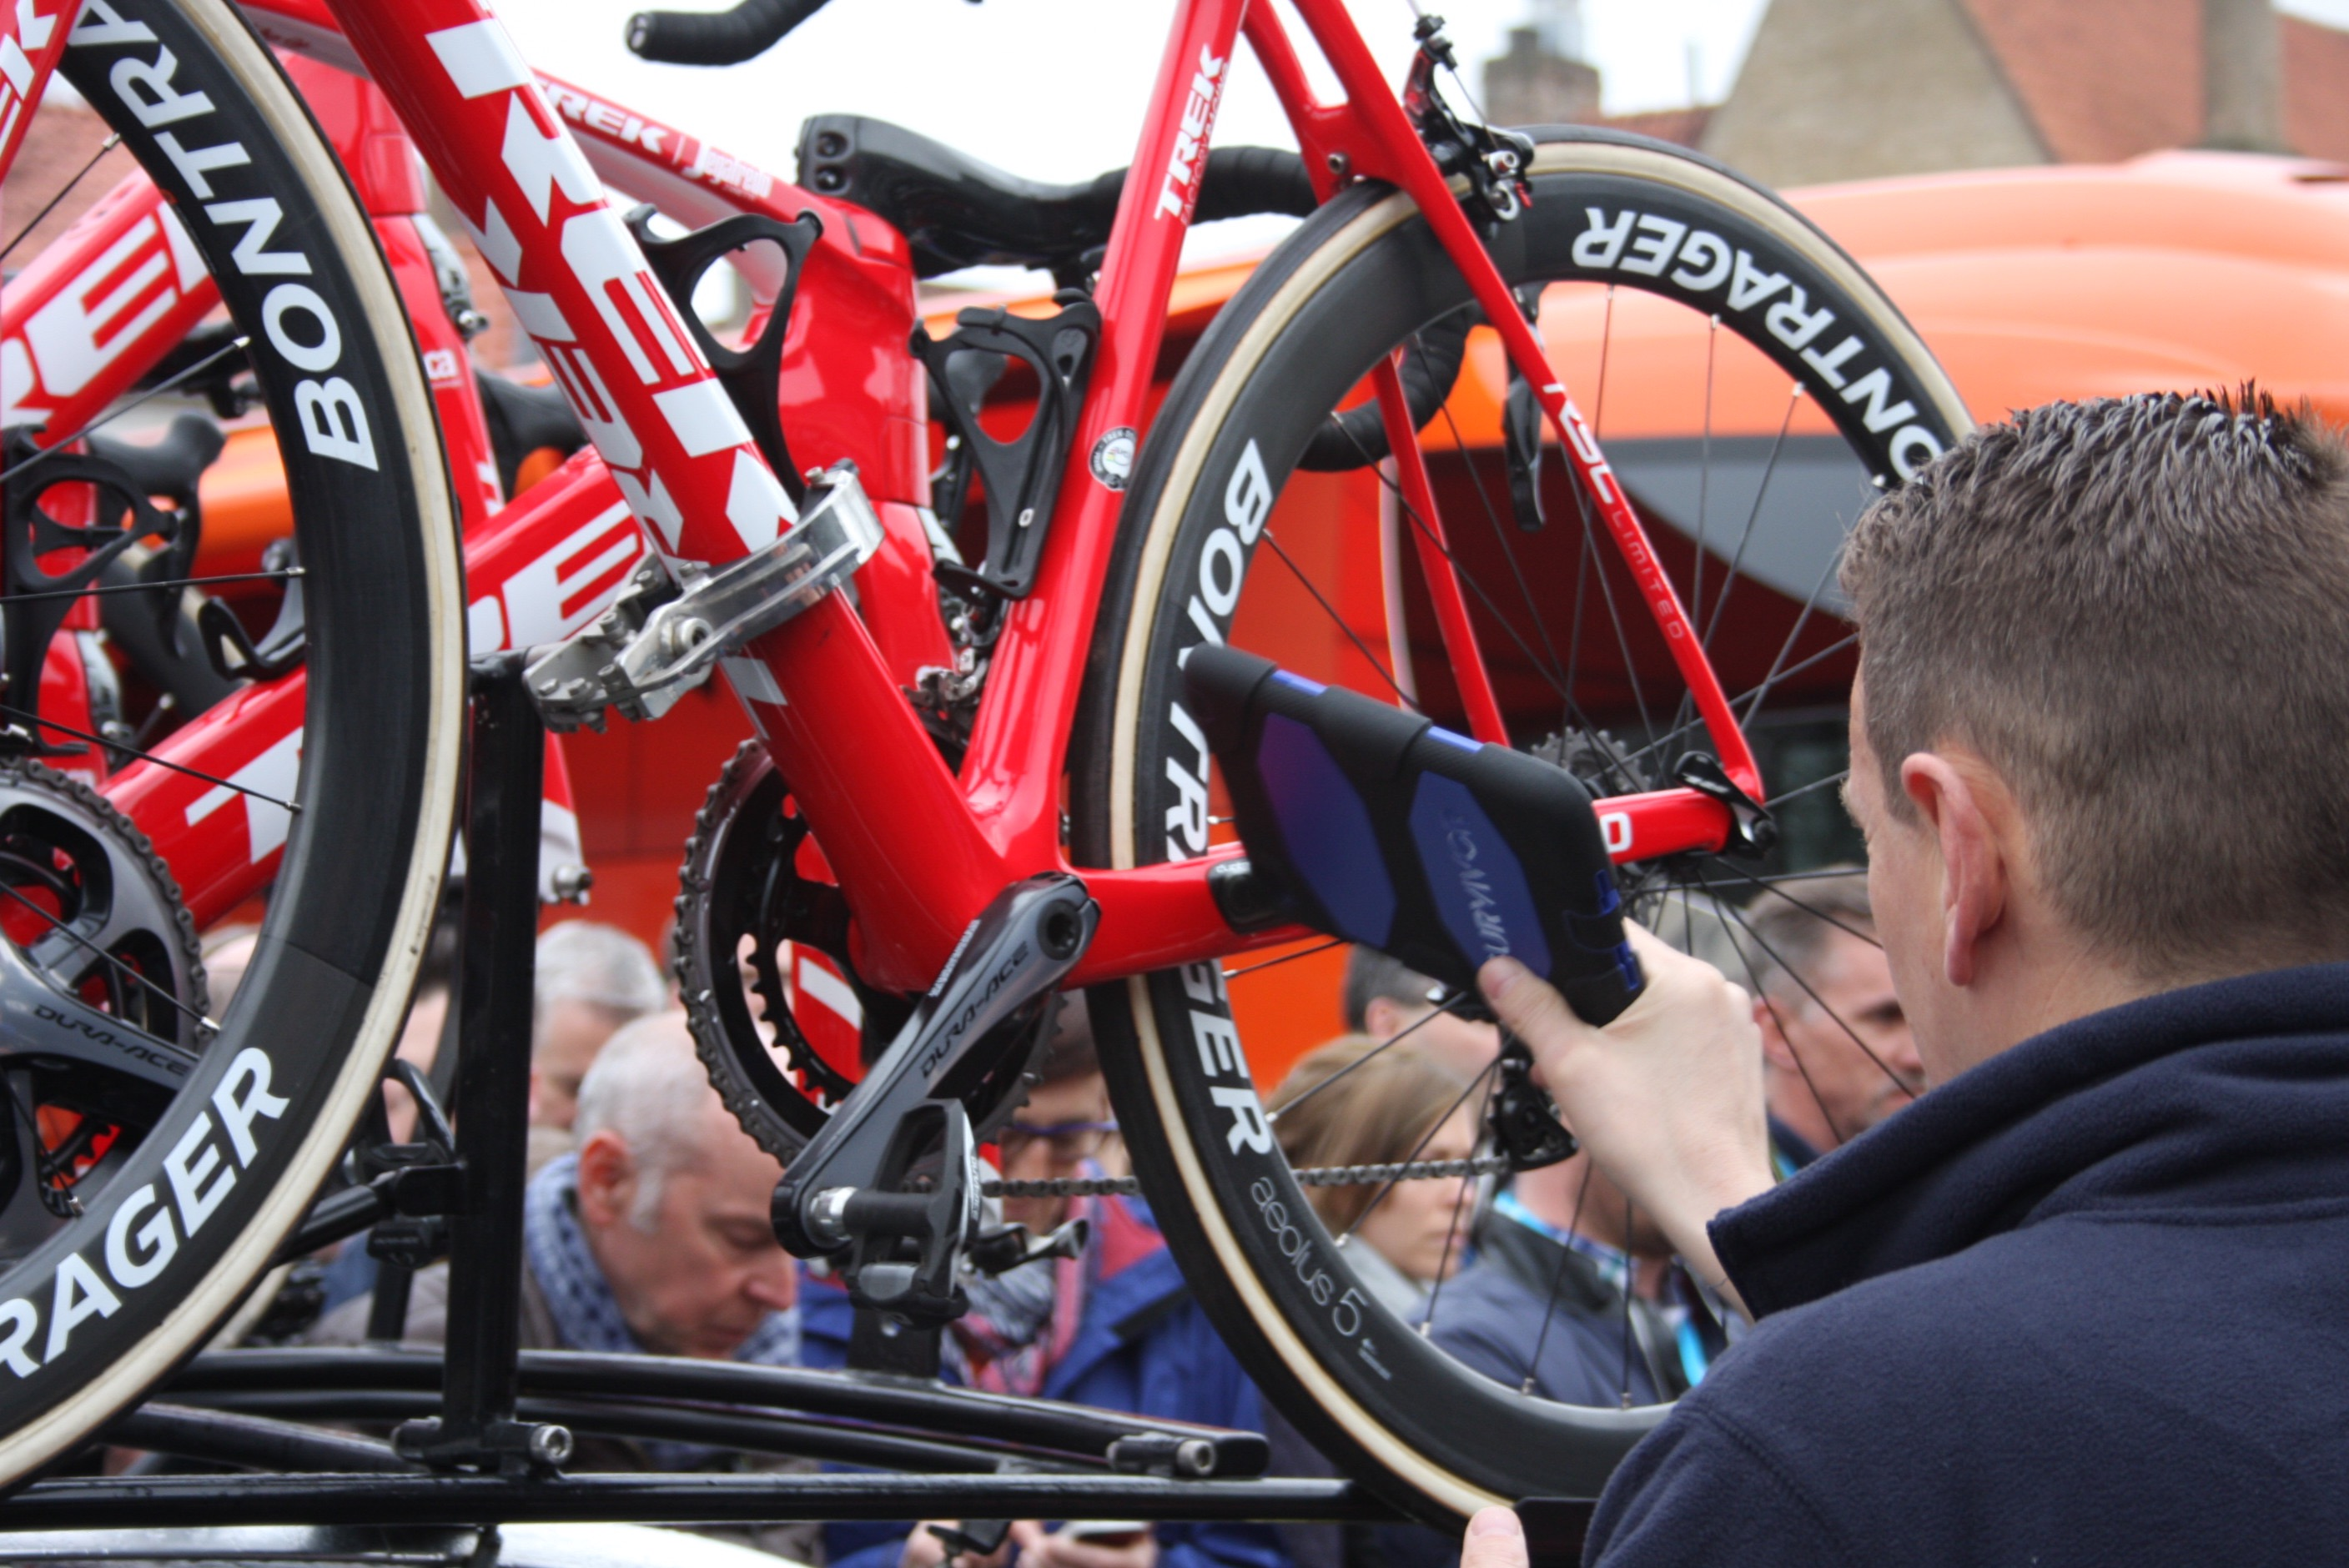 A UCI official waves the magic tablet around a bicycle frame before the start of the 2016 Tour of Flanders in an effort to stamp out technological fraud.